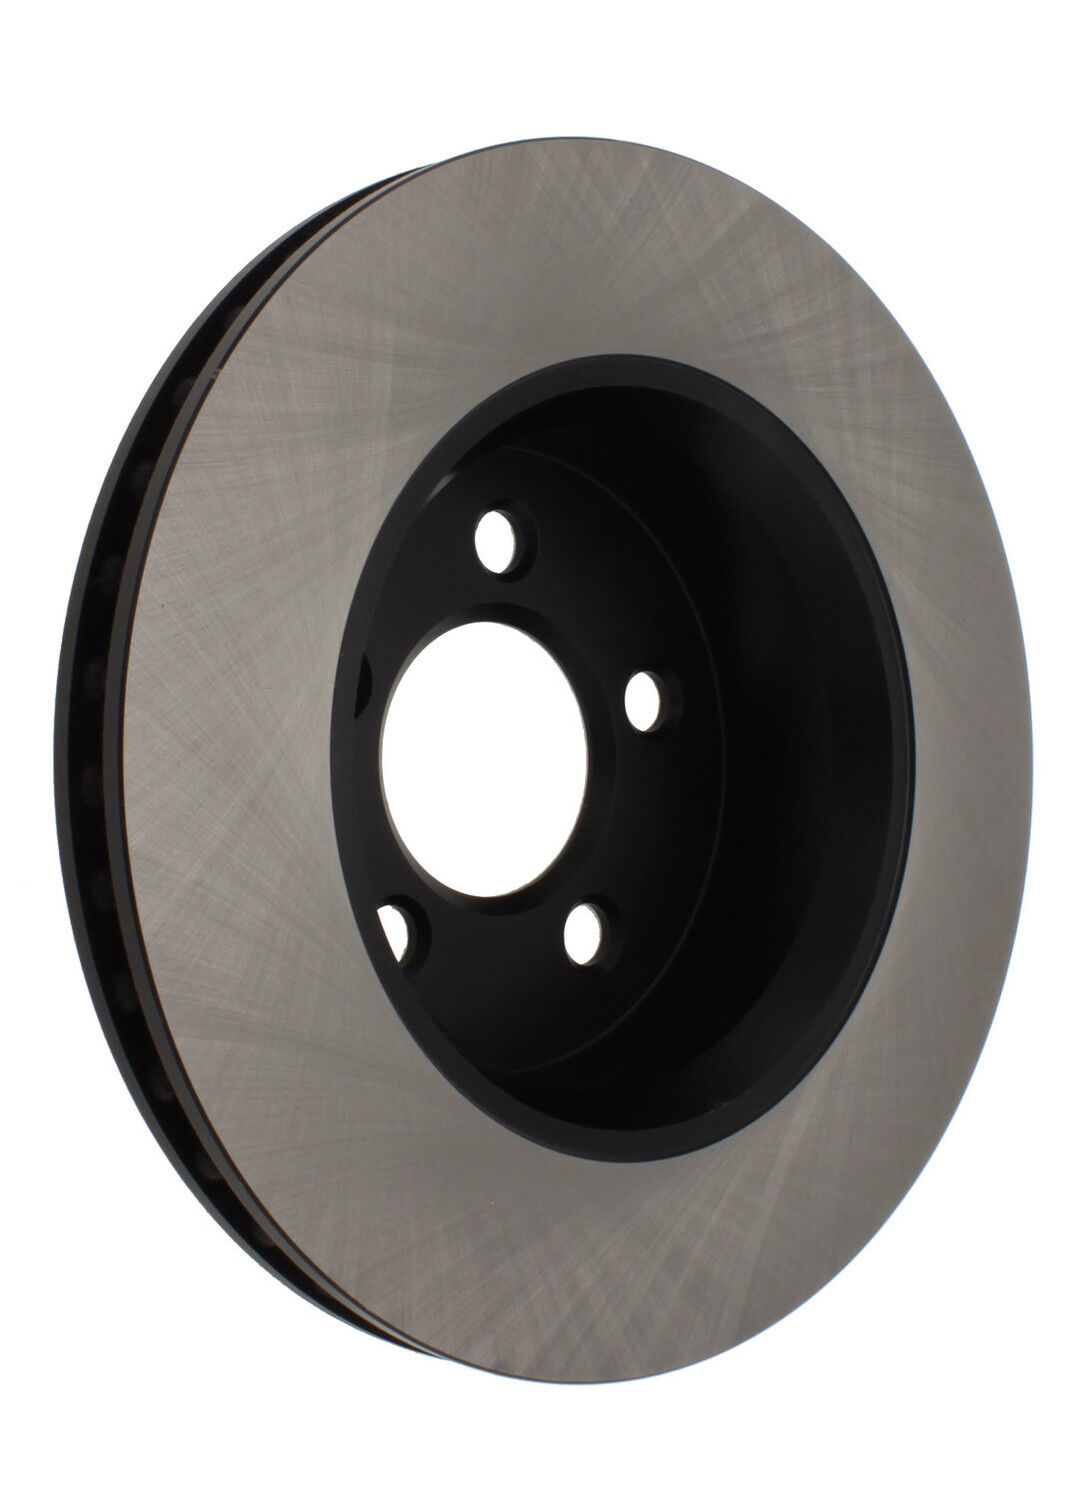 Centric Parts 120.63071 Premium Brake Rotor with E-Coating